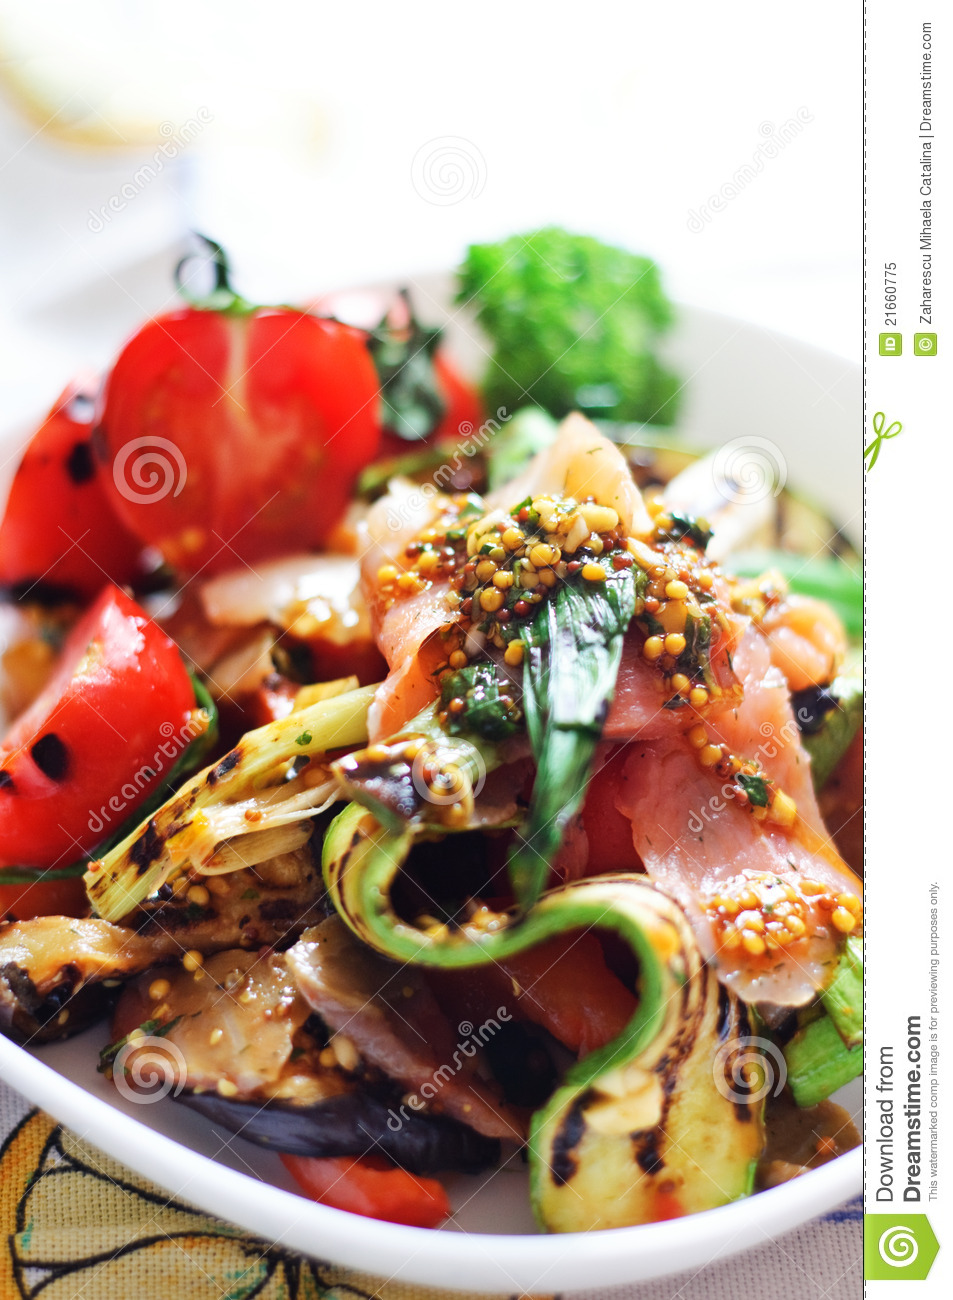 Grilled vegetables and smoked salmon salad